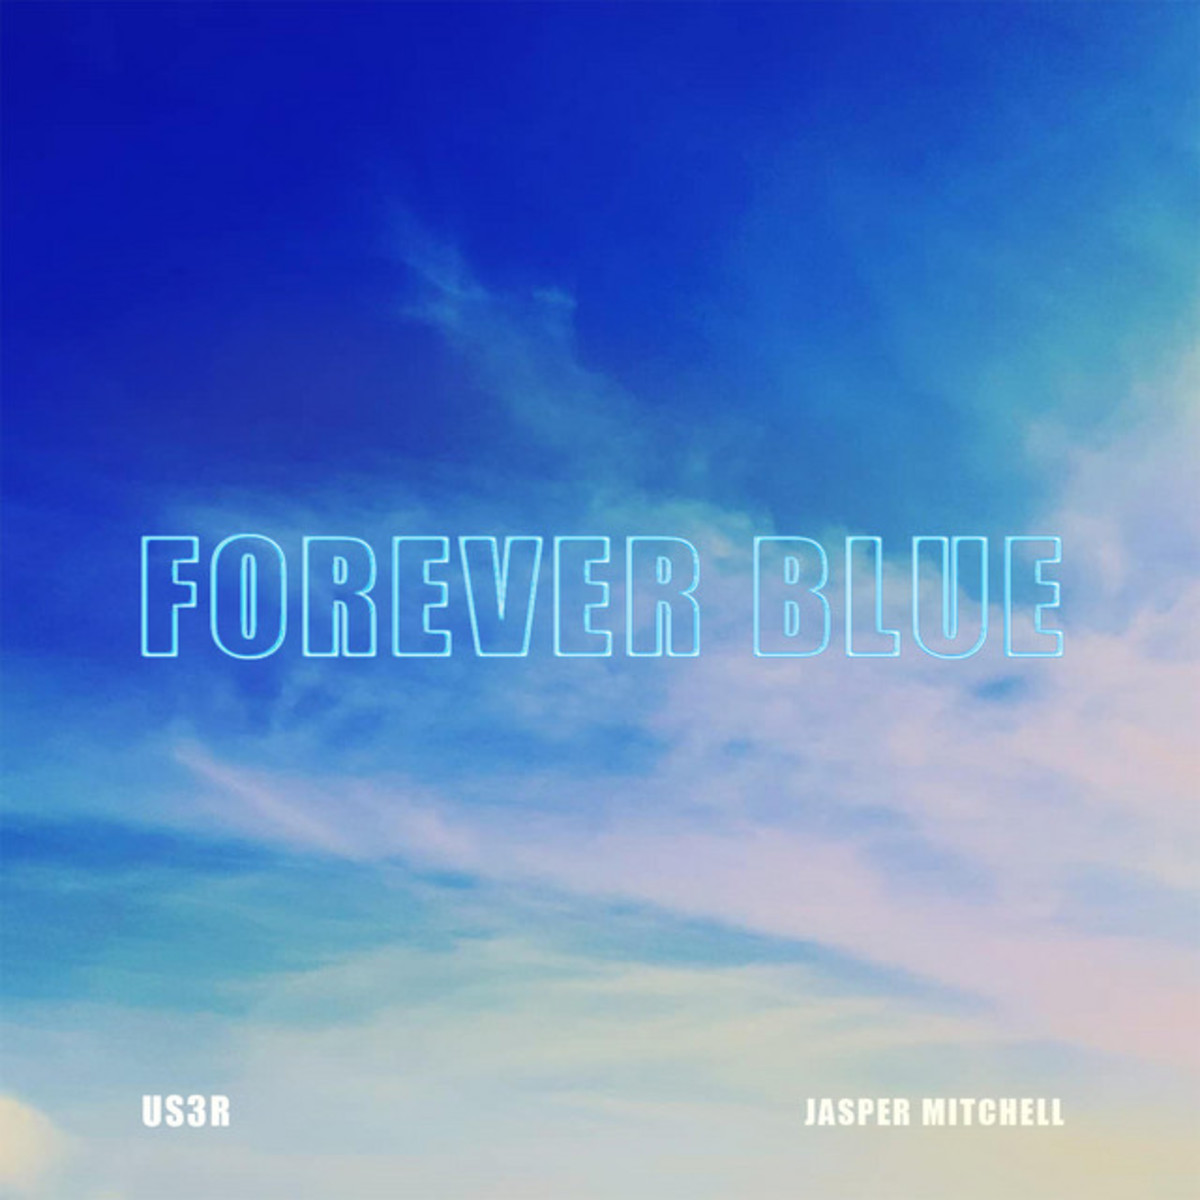 """Artwork for the single, """"Forever Blue,"""" by US3r and Jasper Mitchell"""